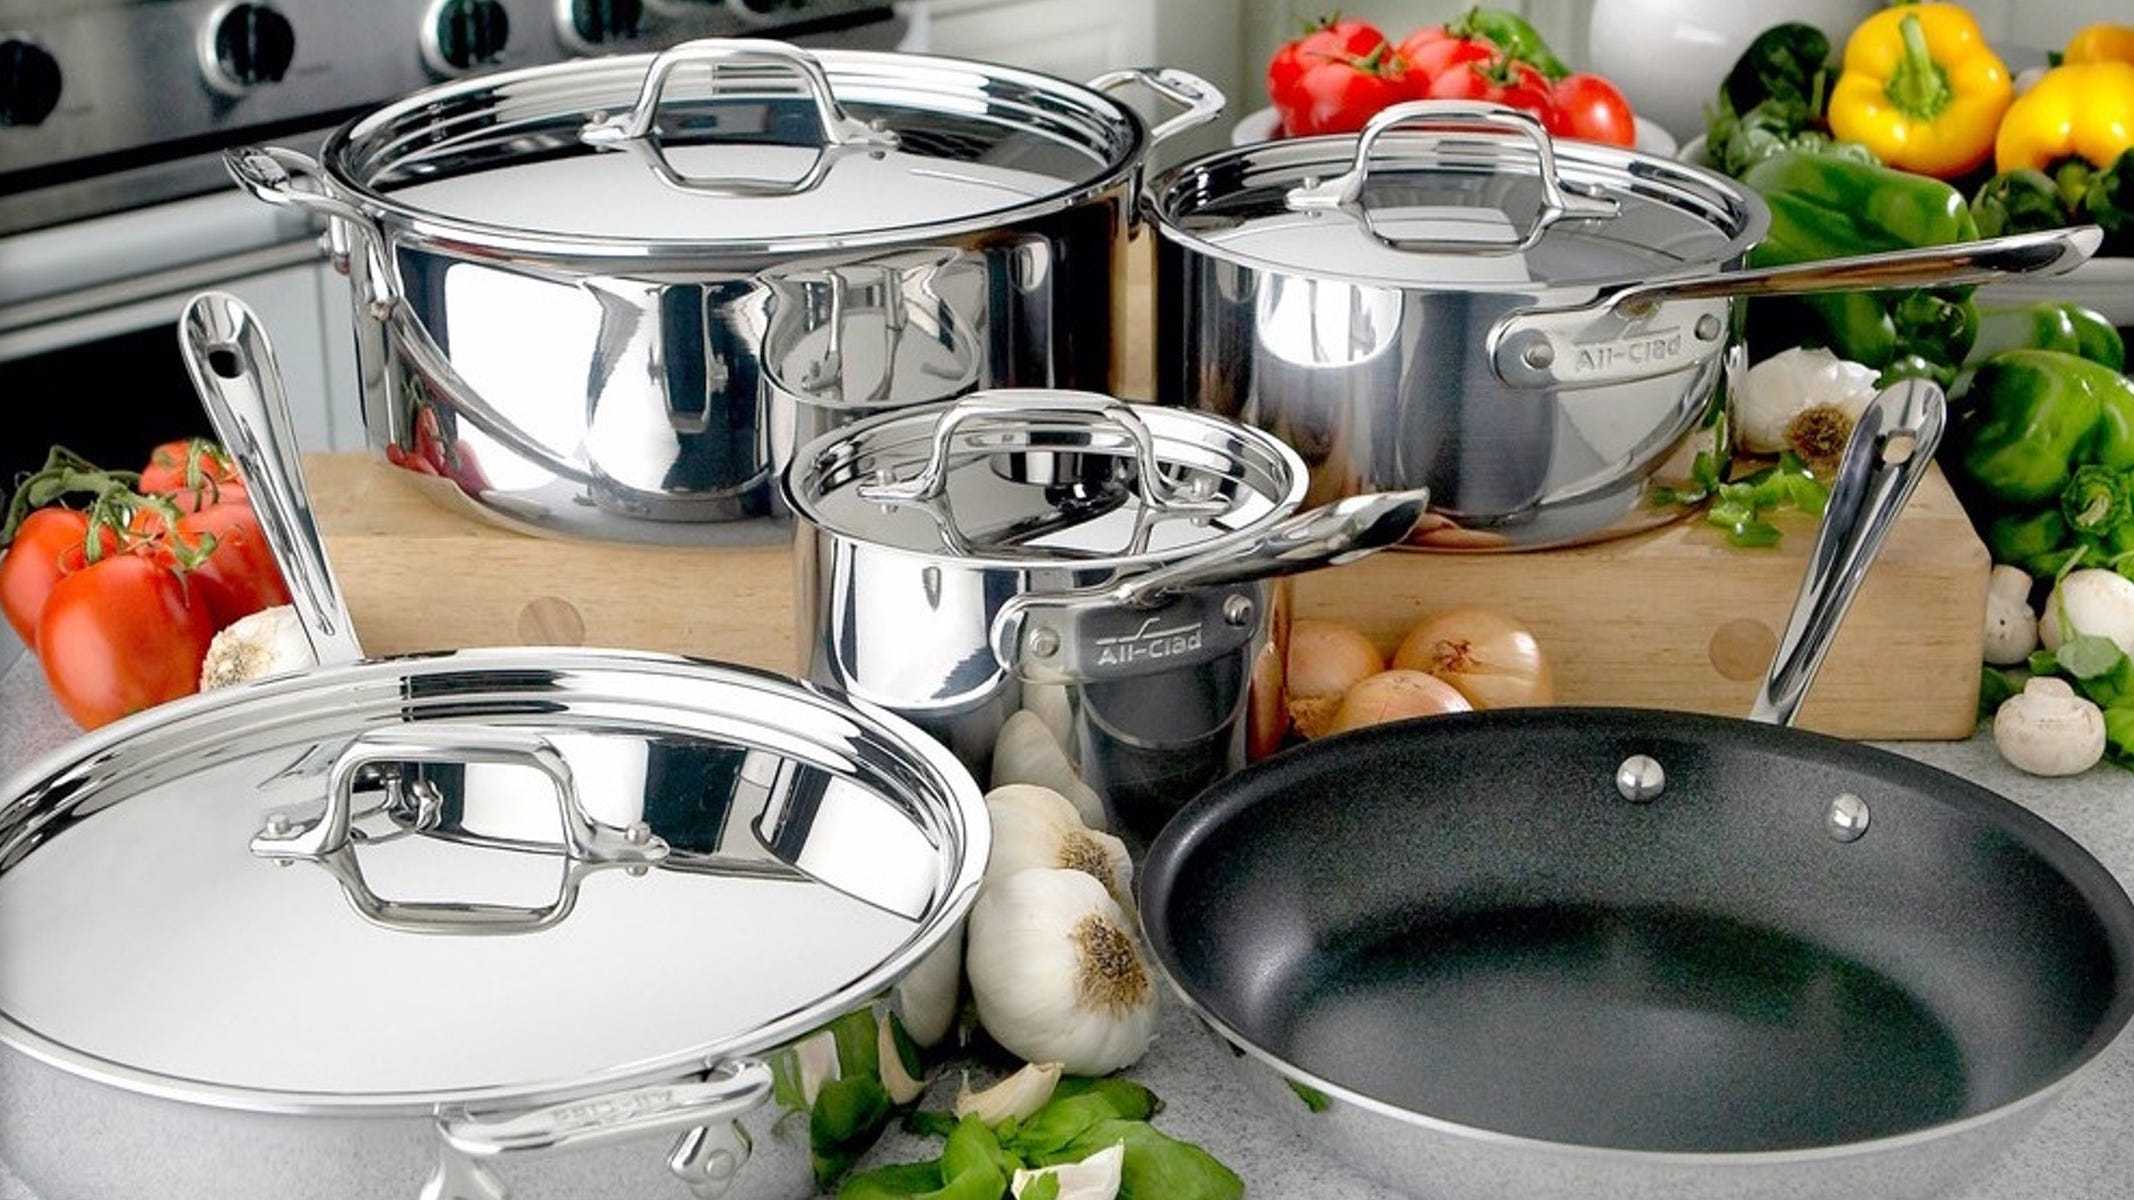 All-Clad's VIP Factory Seconds Sale on all your favorite cookware is back